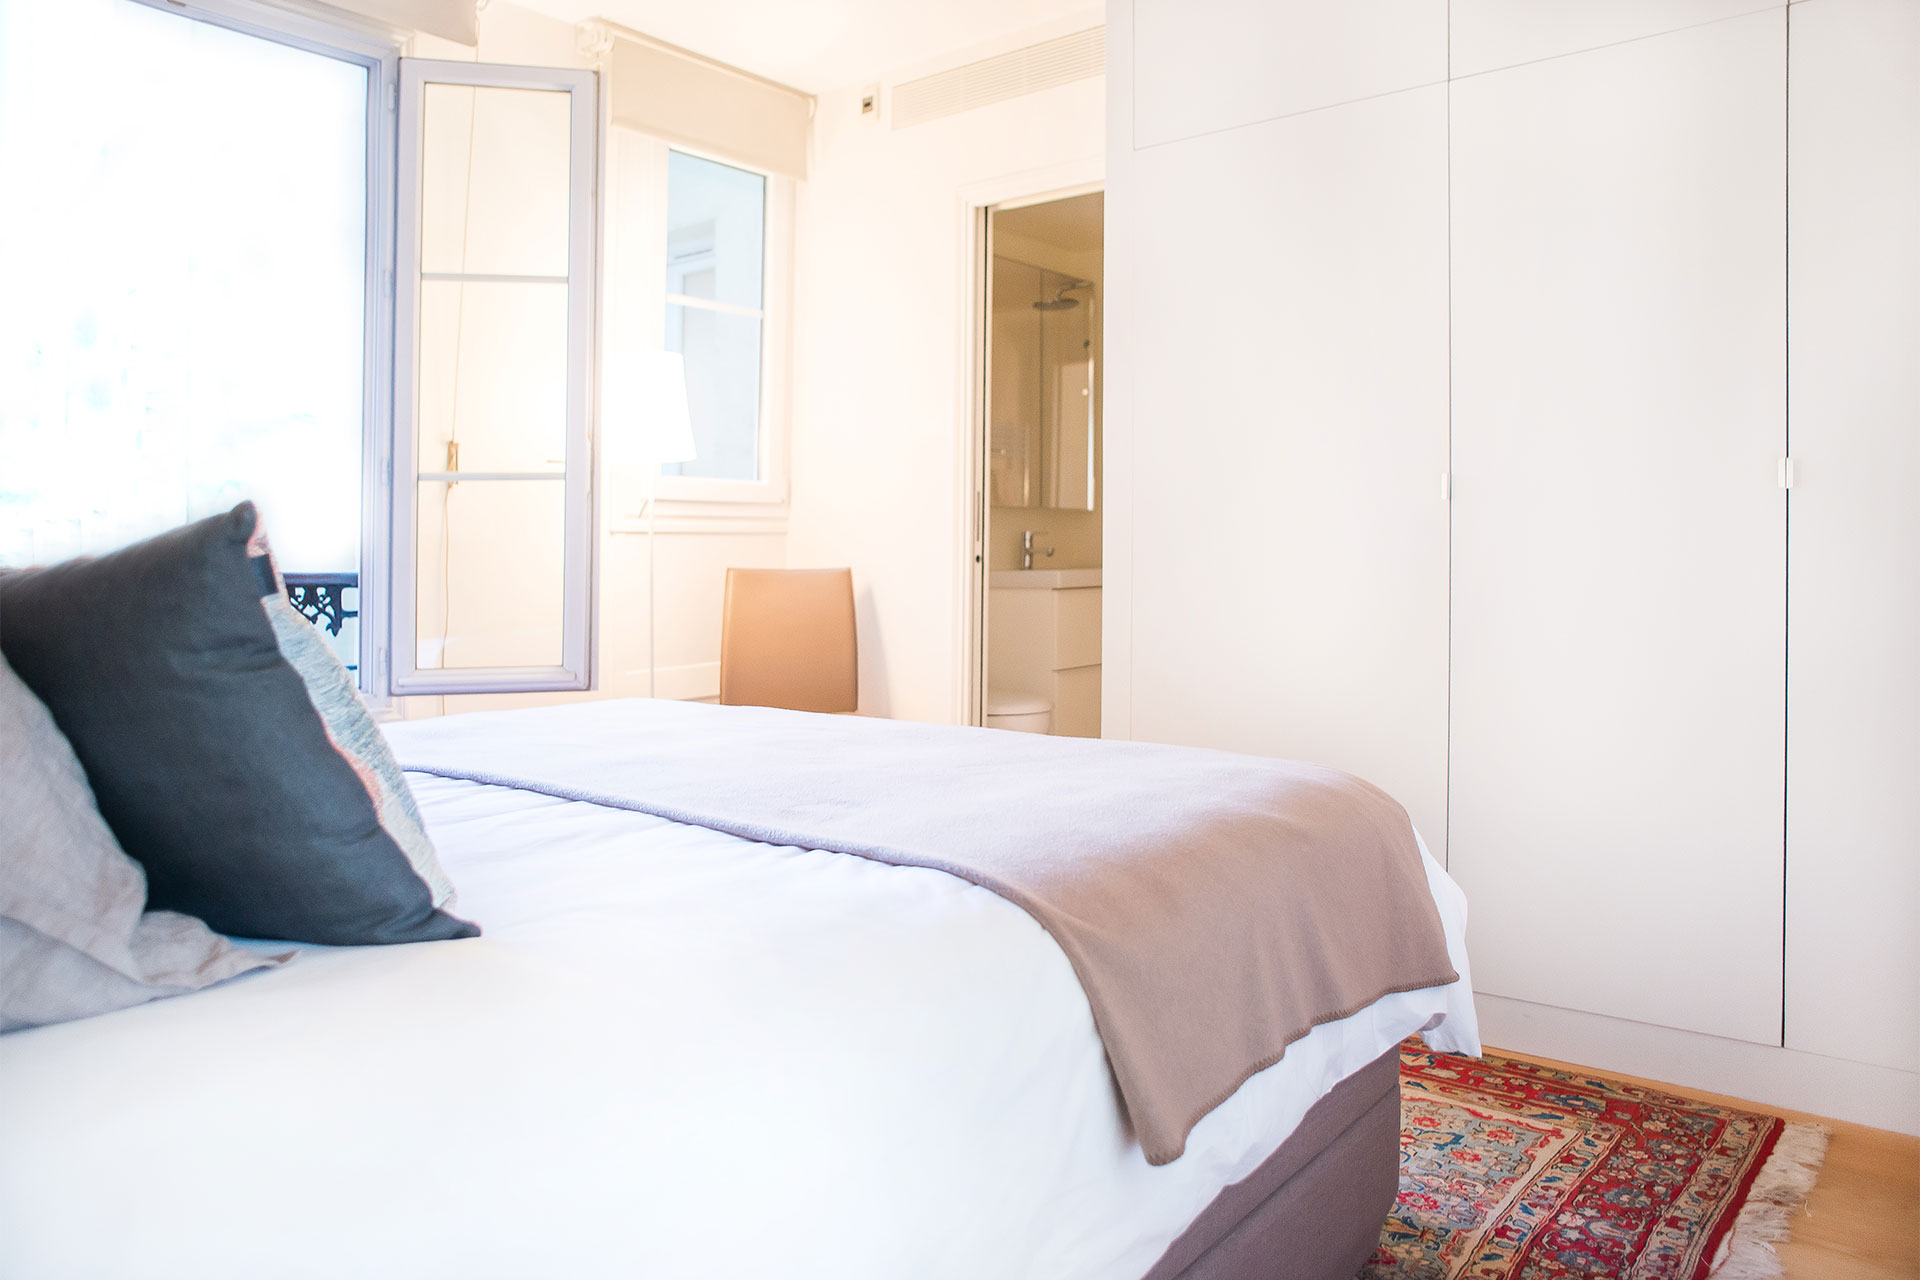 Large built in closets in the bedroom at Saint-Bris vacation rental with Paris Perfect